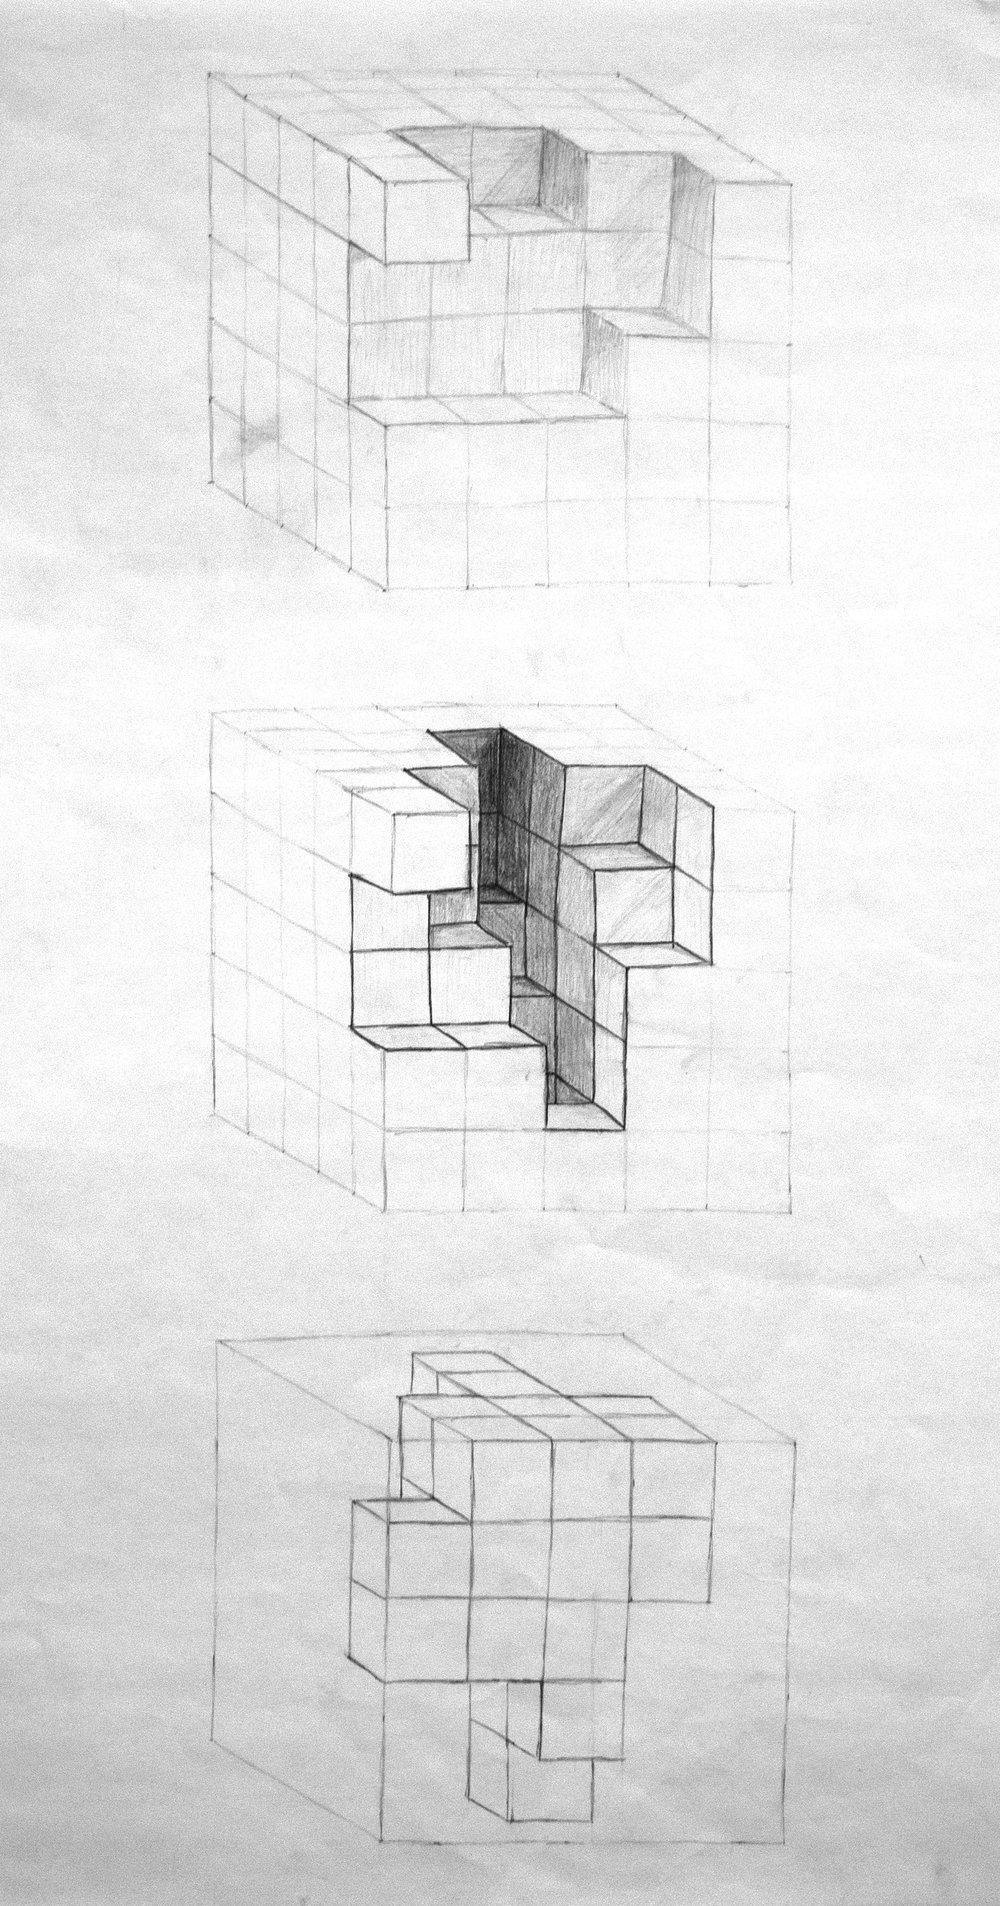 Our process started by simply carving pieces out of a cube to see the spaces that we could create.